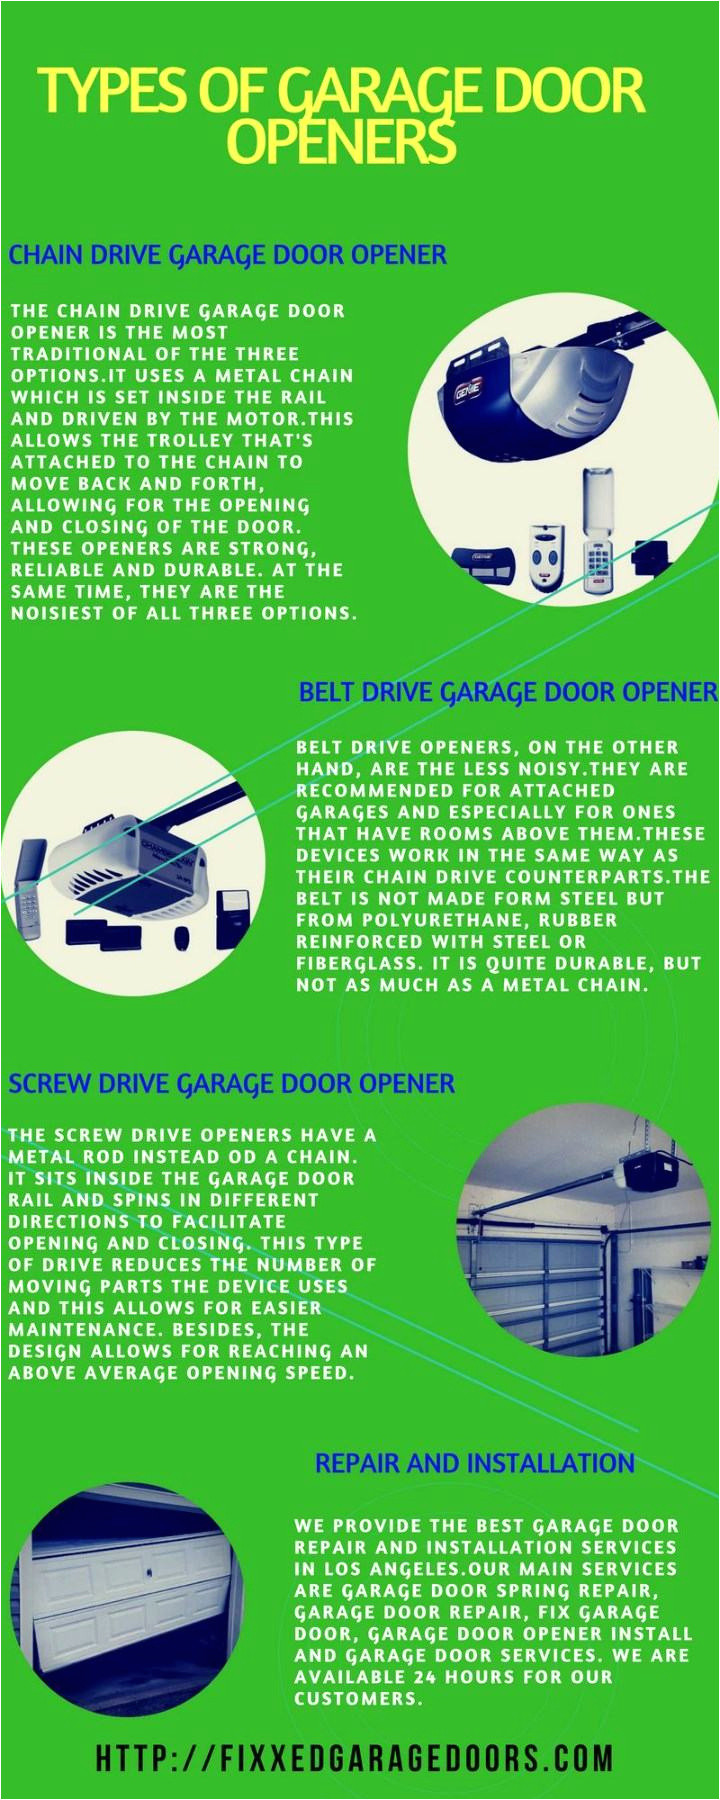 change garage door opener luxury 42 garage door repair fairfax va